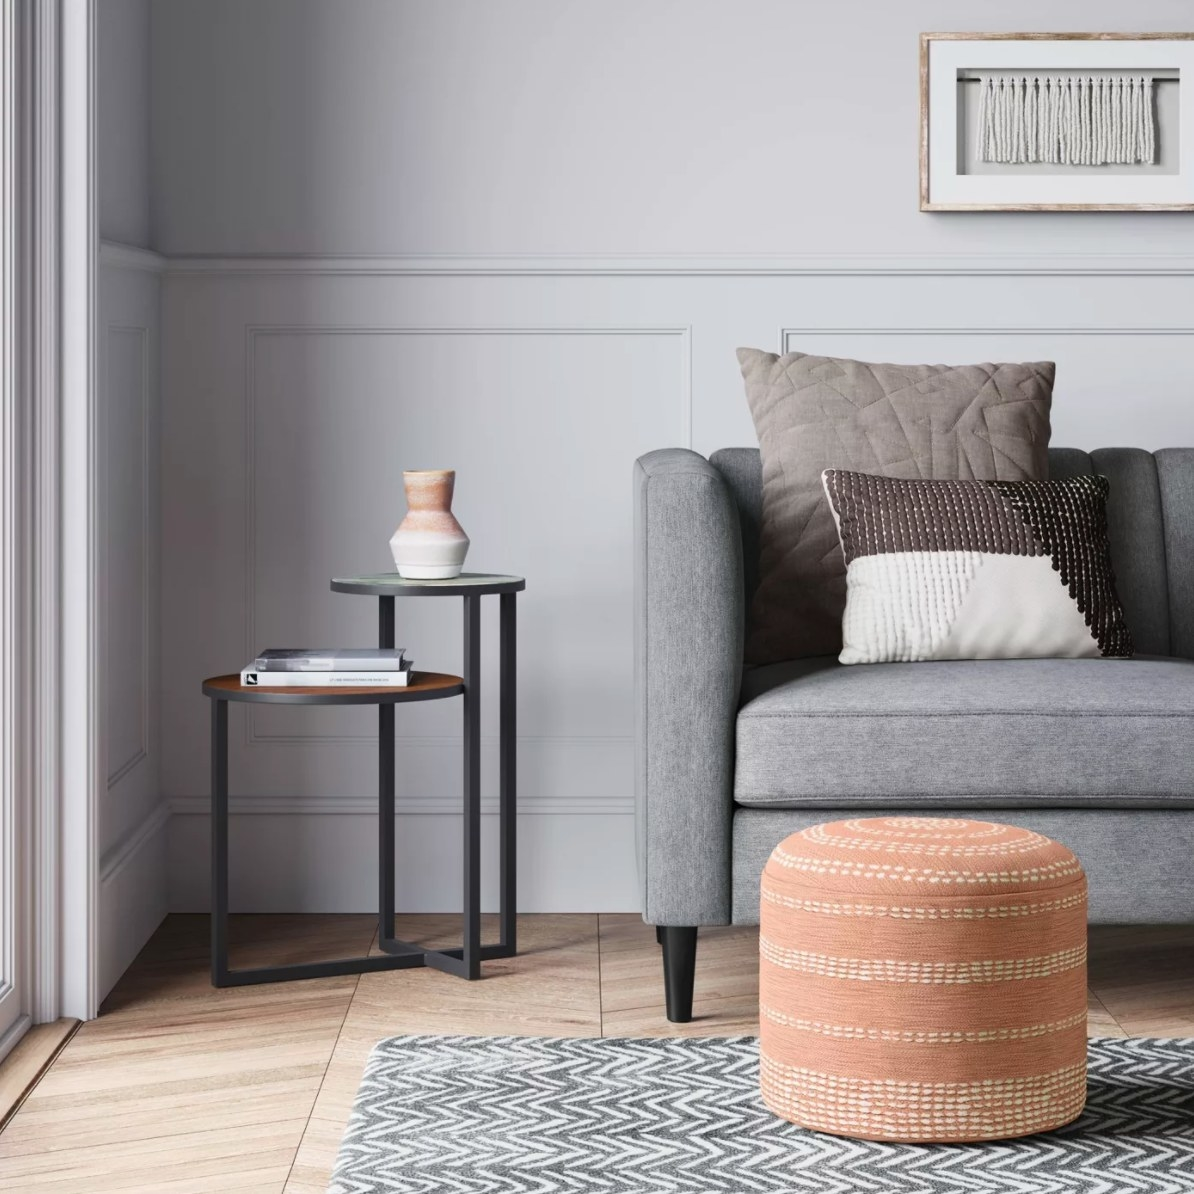 The pouf pillow in coral with white detail